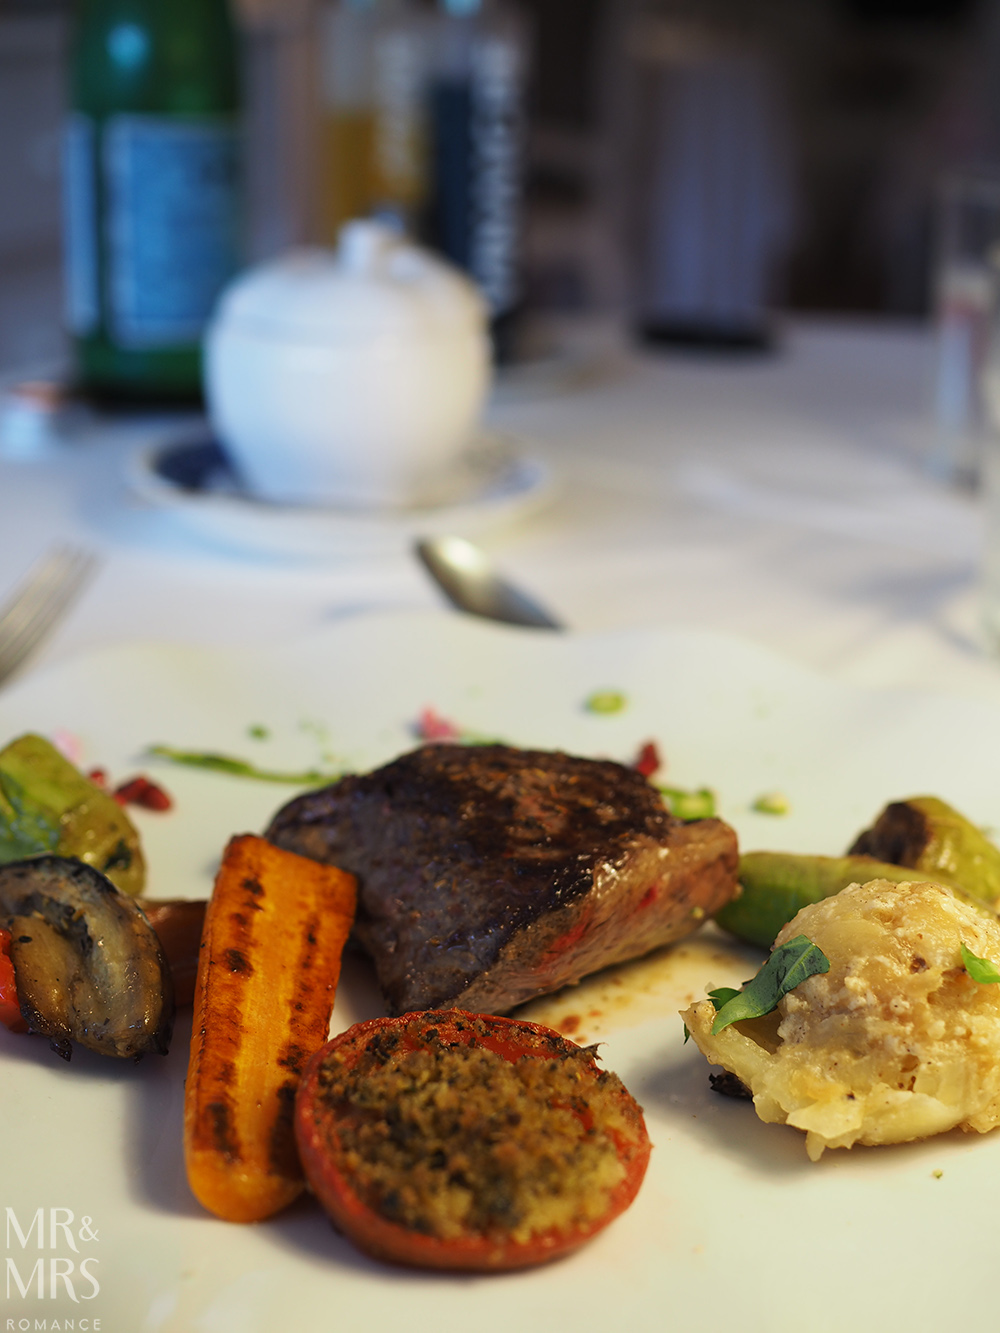 Pave de boeuf at Restaurant Beau Sejour Gorbio - Mr & Mrs Romance